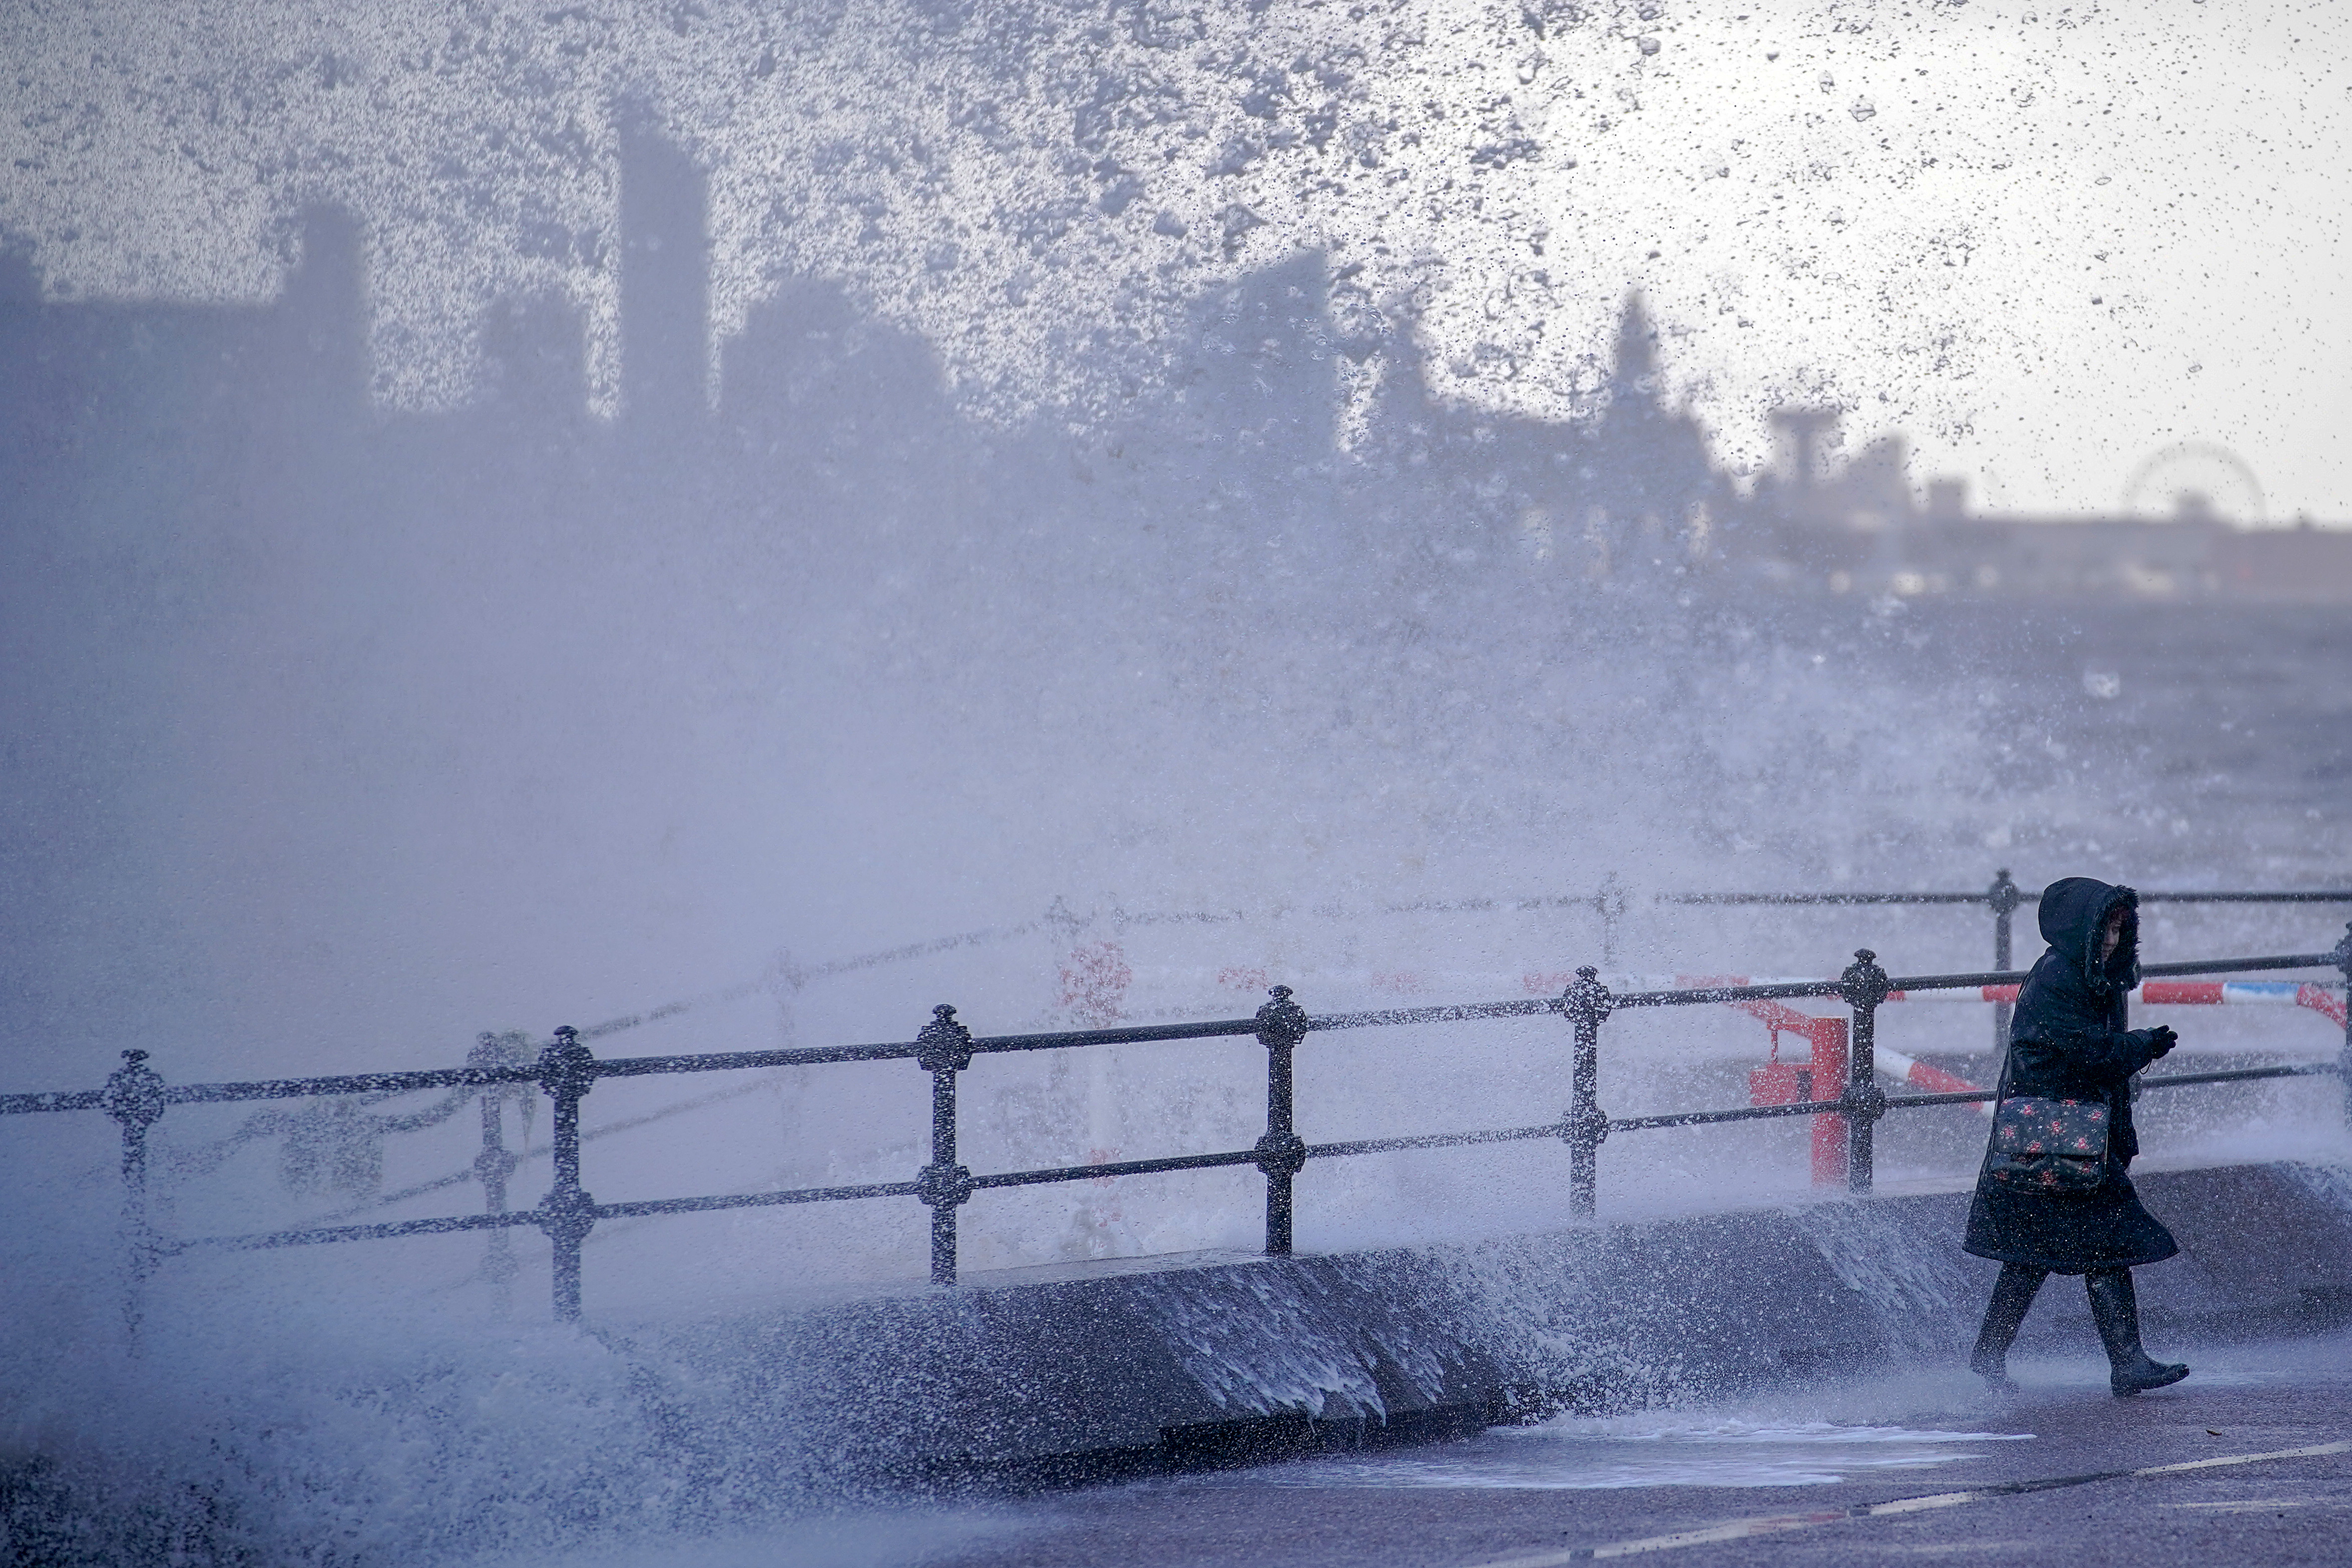 Waves whipped up by the wind of Storm Eleanor lash against the sea wall on Jan. 3, 2018 in New Brighton, United Kingdom.